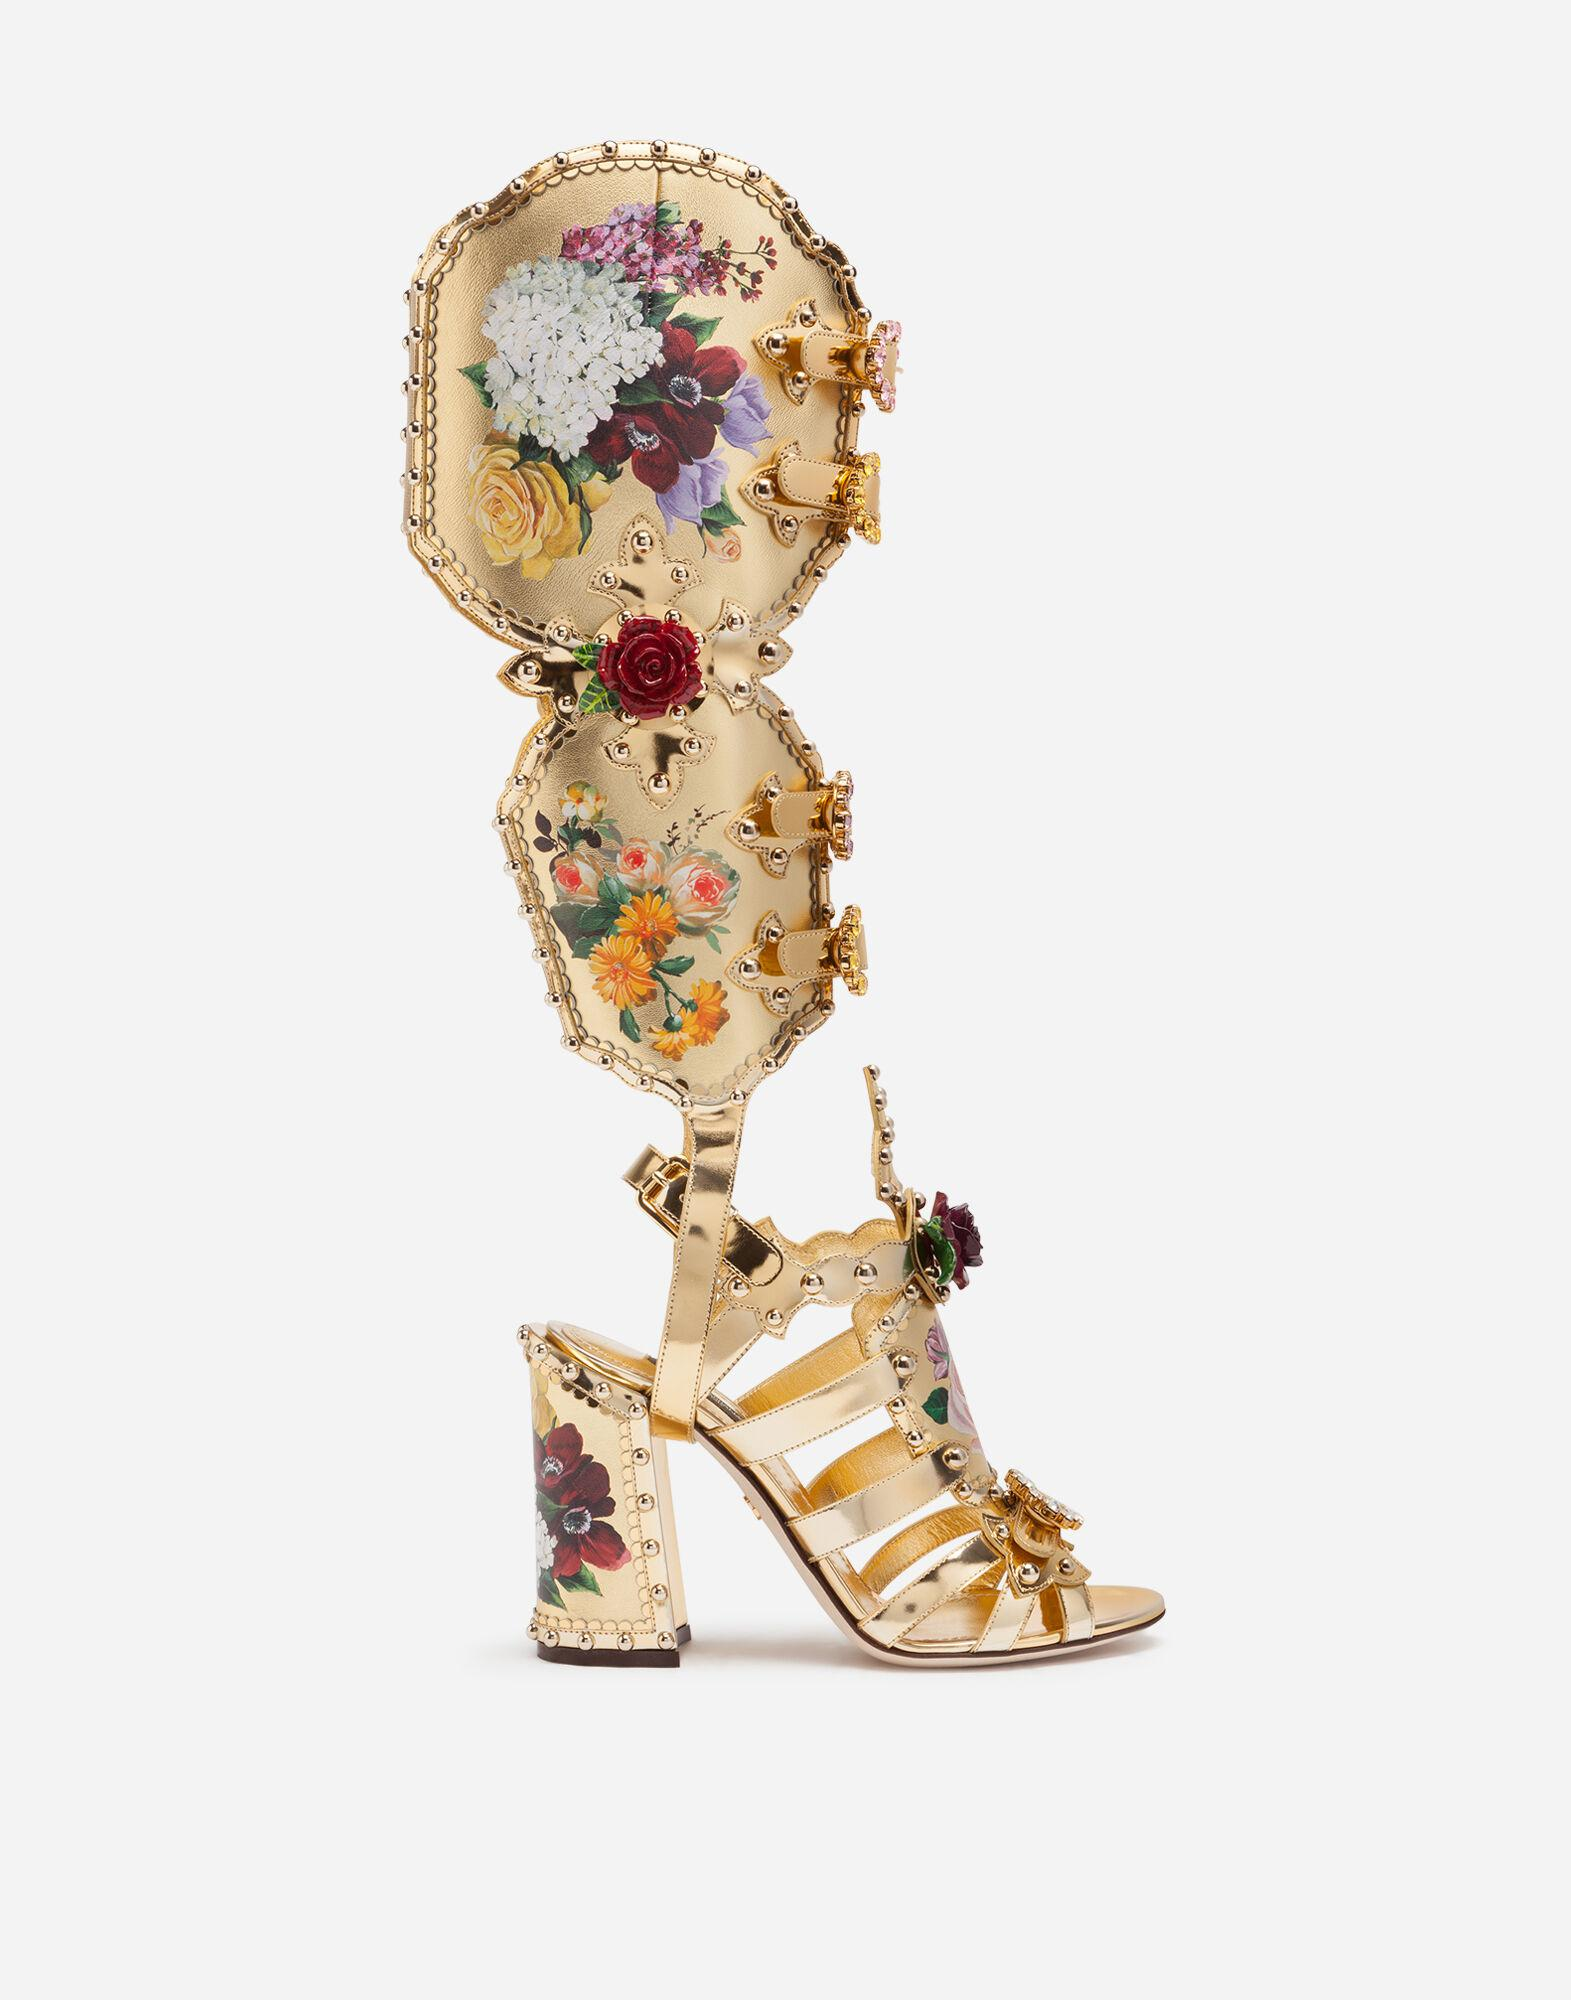 Nappa mordore gladiator sandals with studs and painted flower detailing